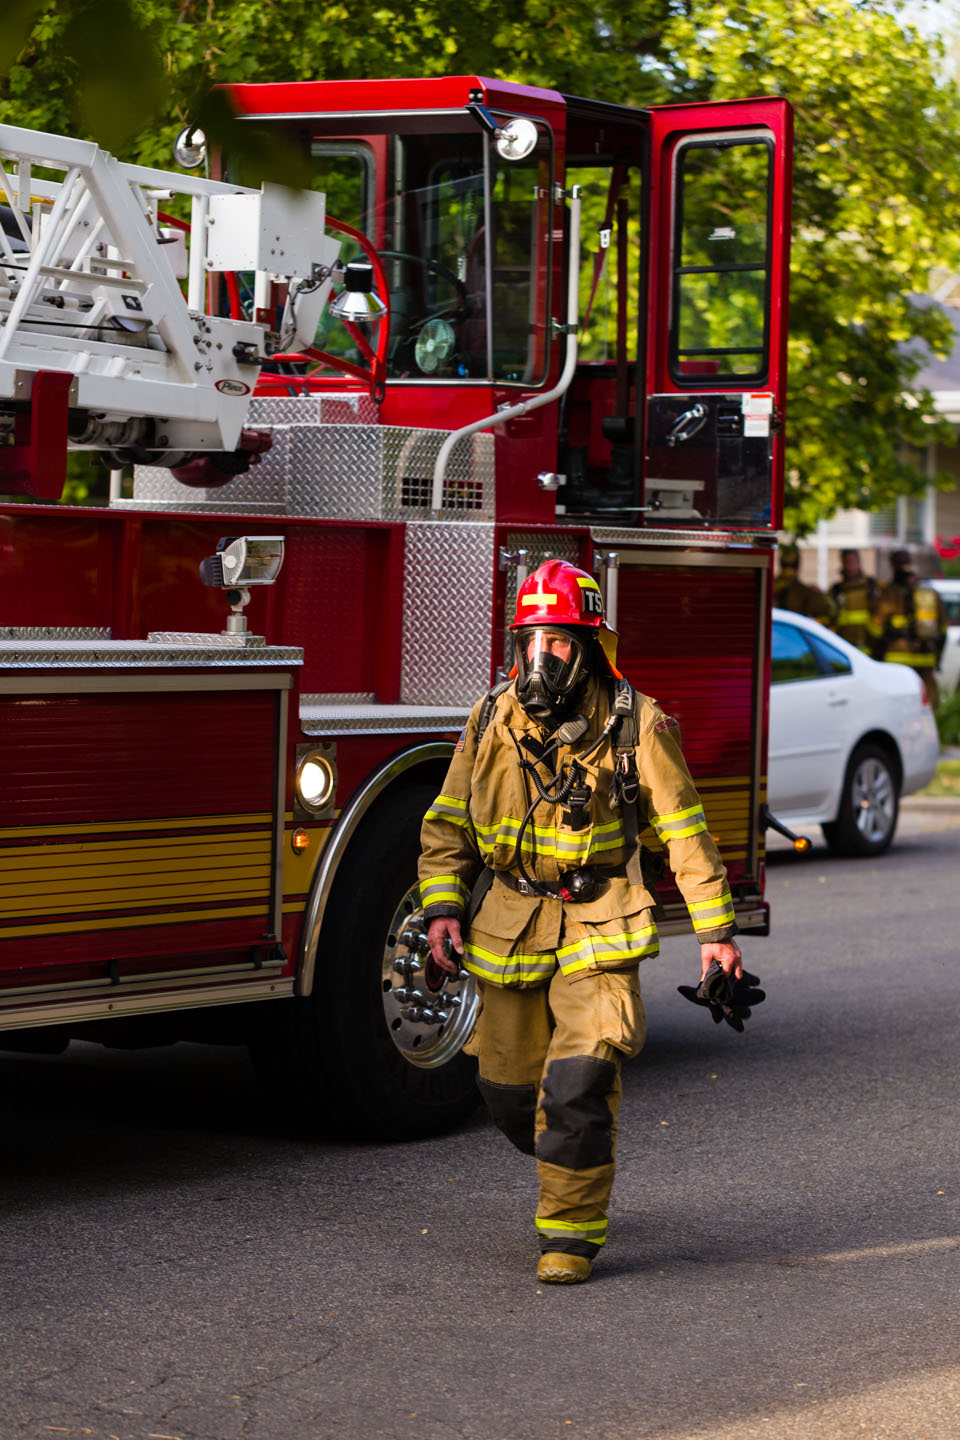 A fire fighter walks through the fire trucks